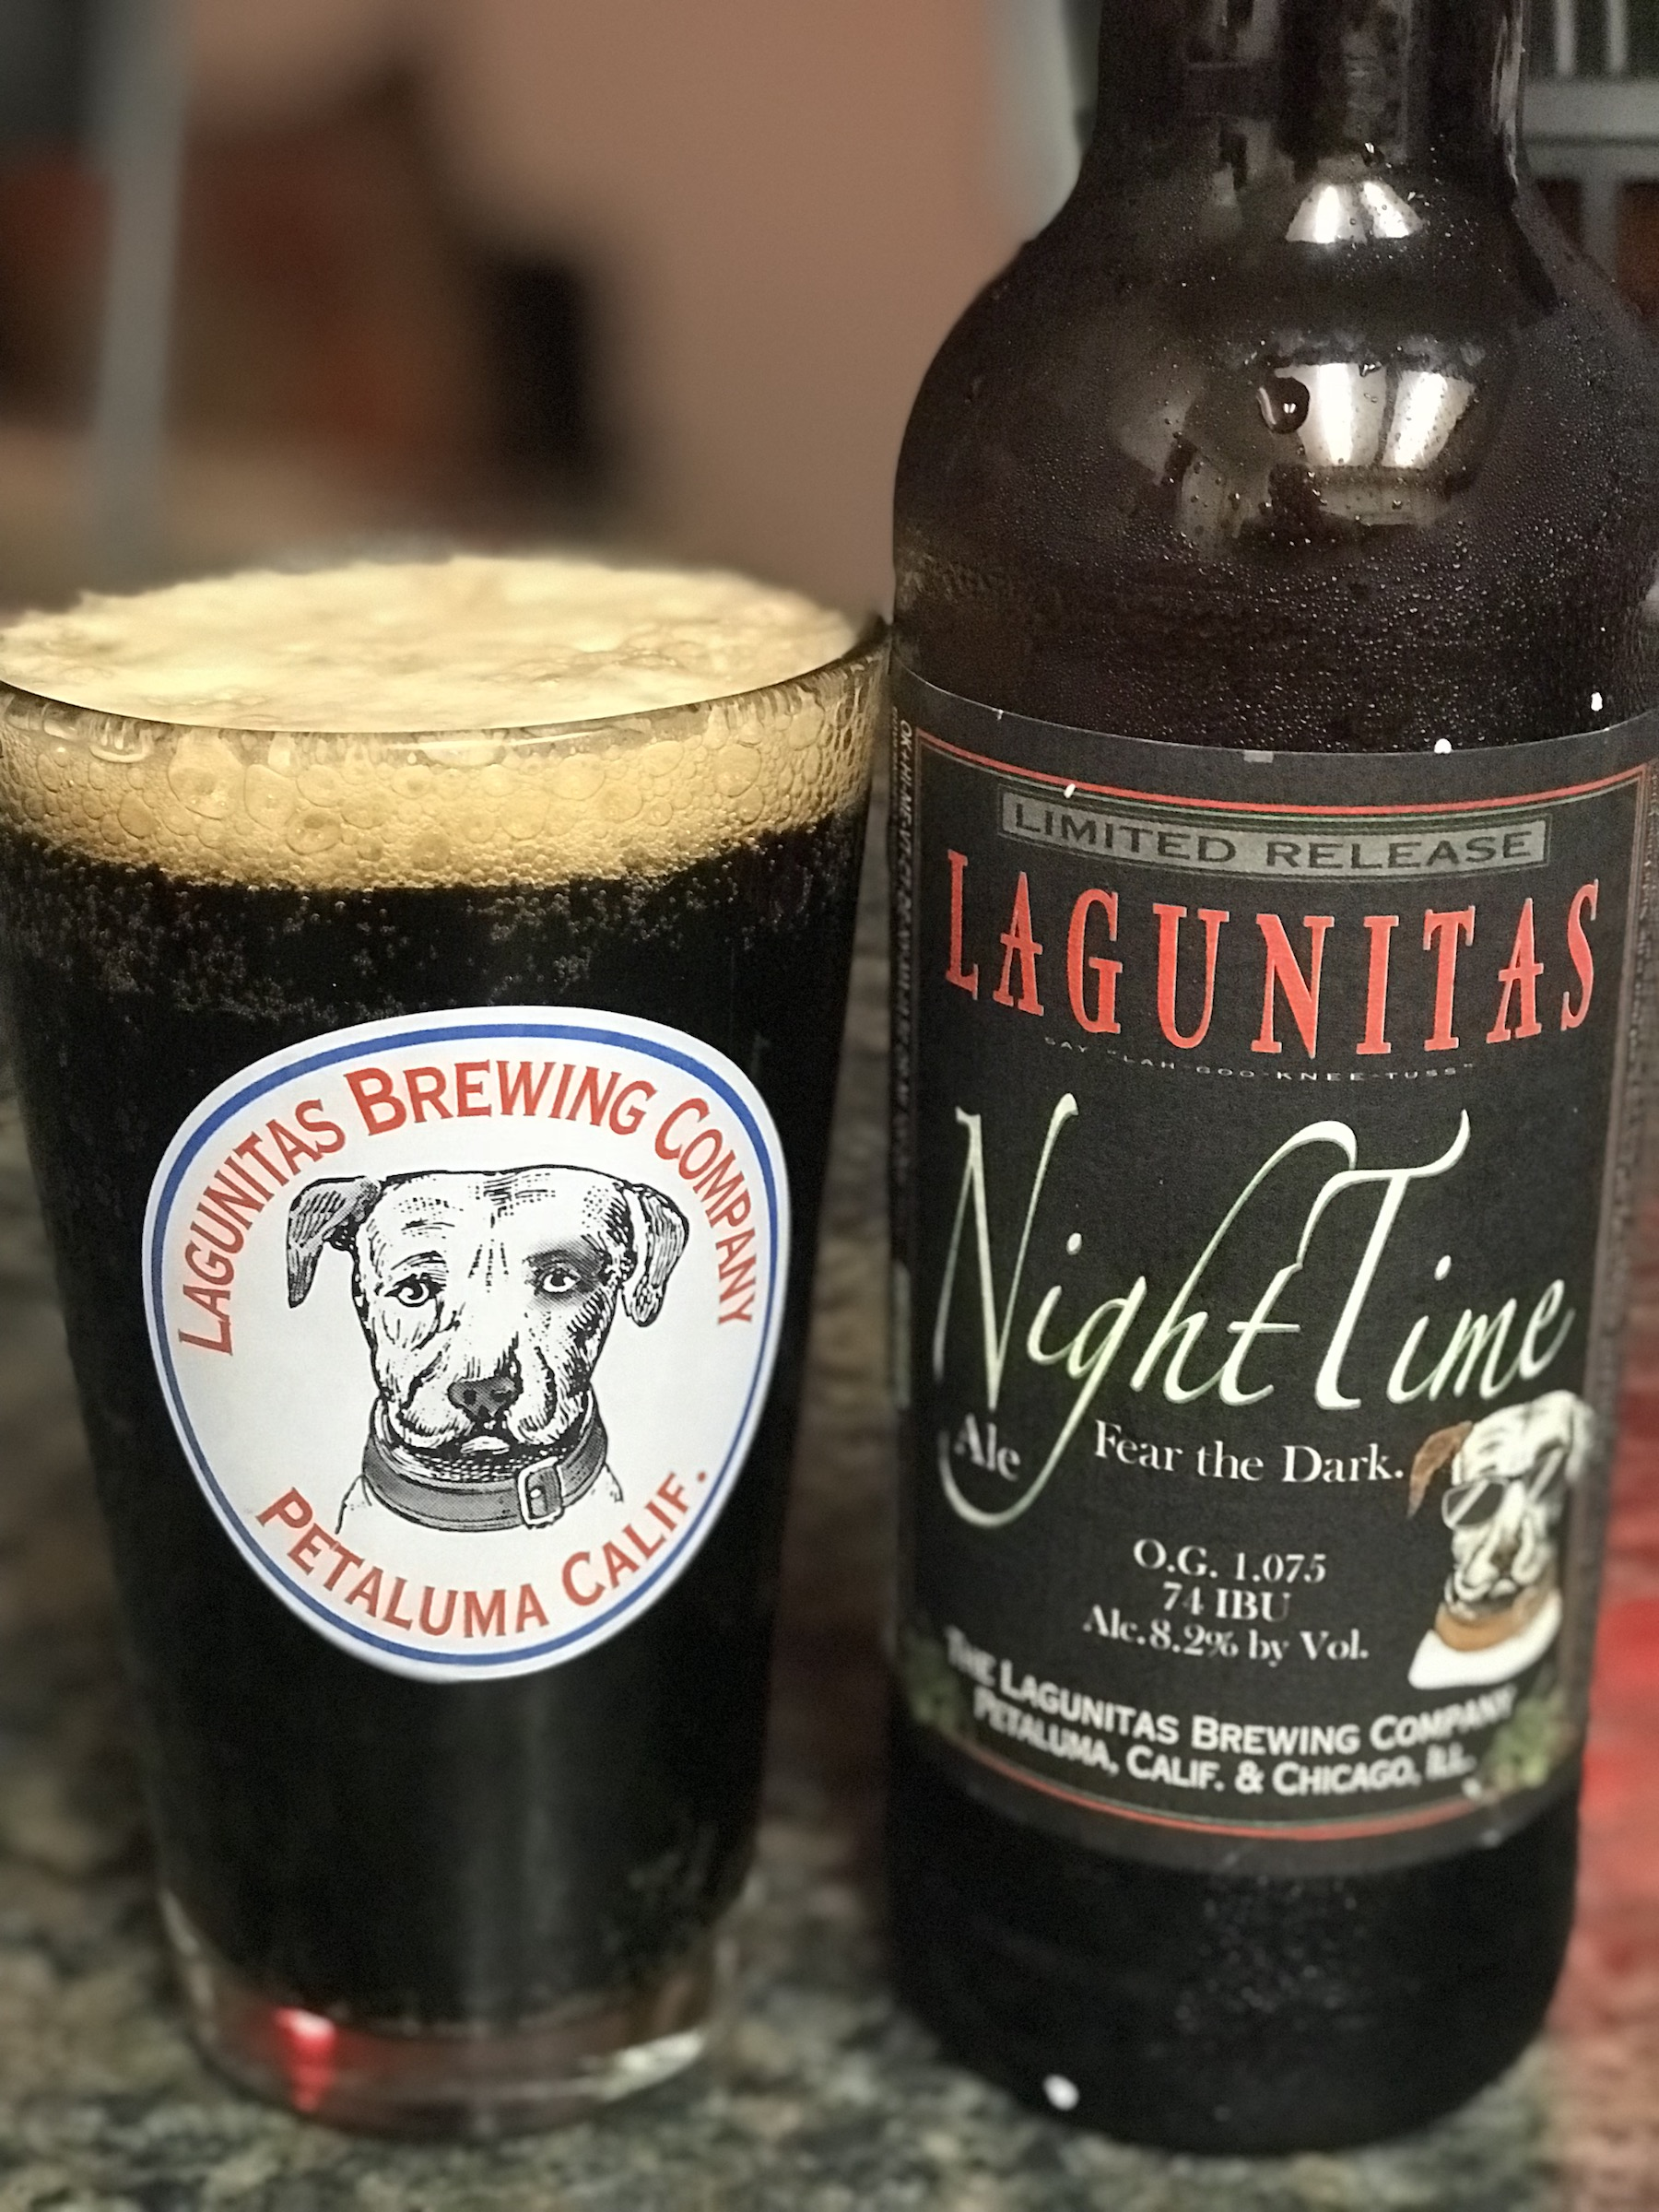 NightTime Ale by Lagunitas Brewing Company